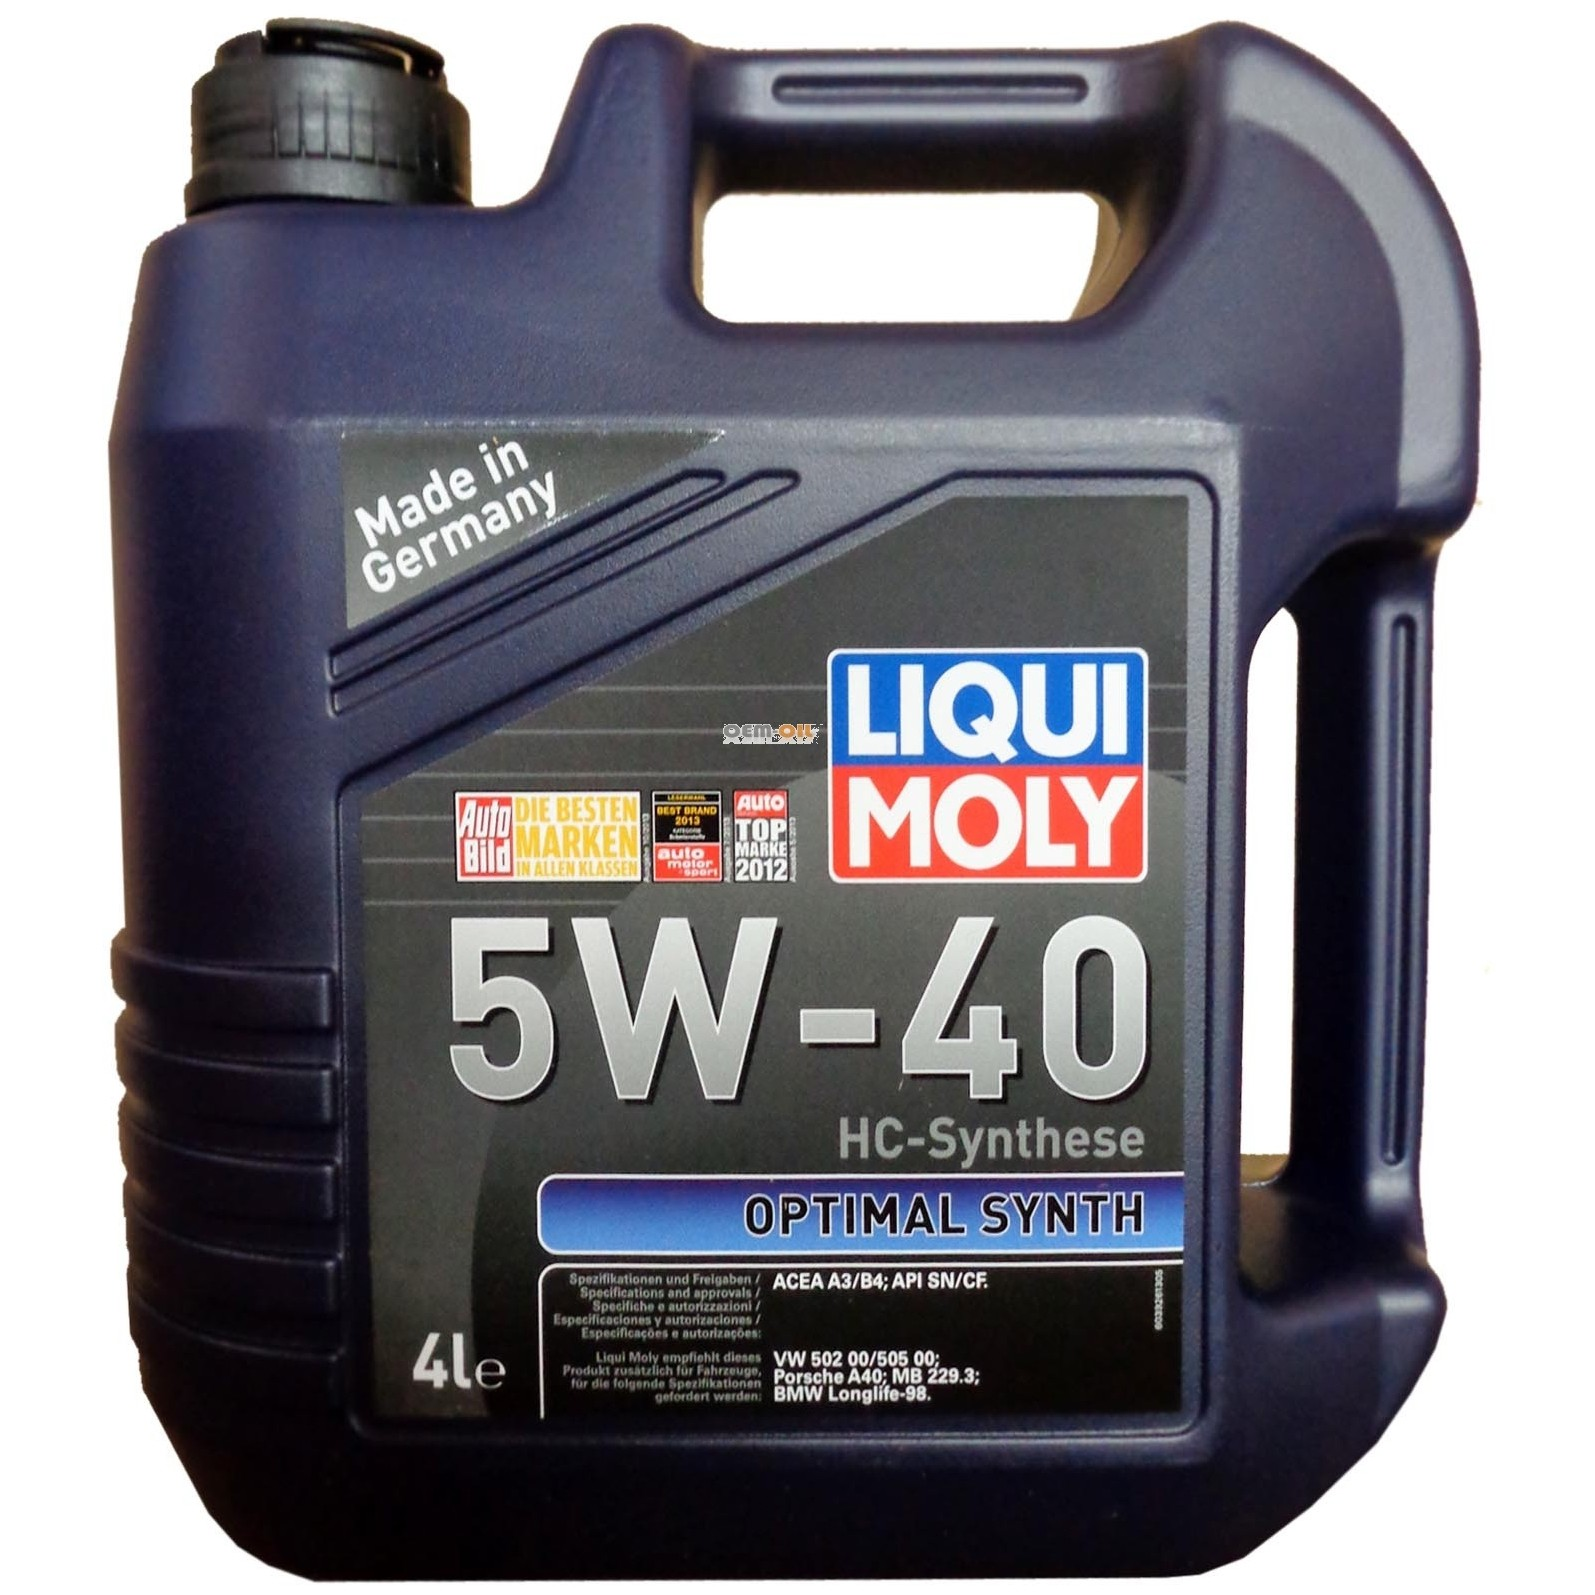 Изображение для LIQUI MOLY LM 2293 Optimal Synth 5W-40 5л